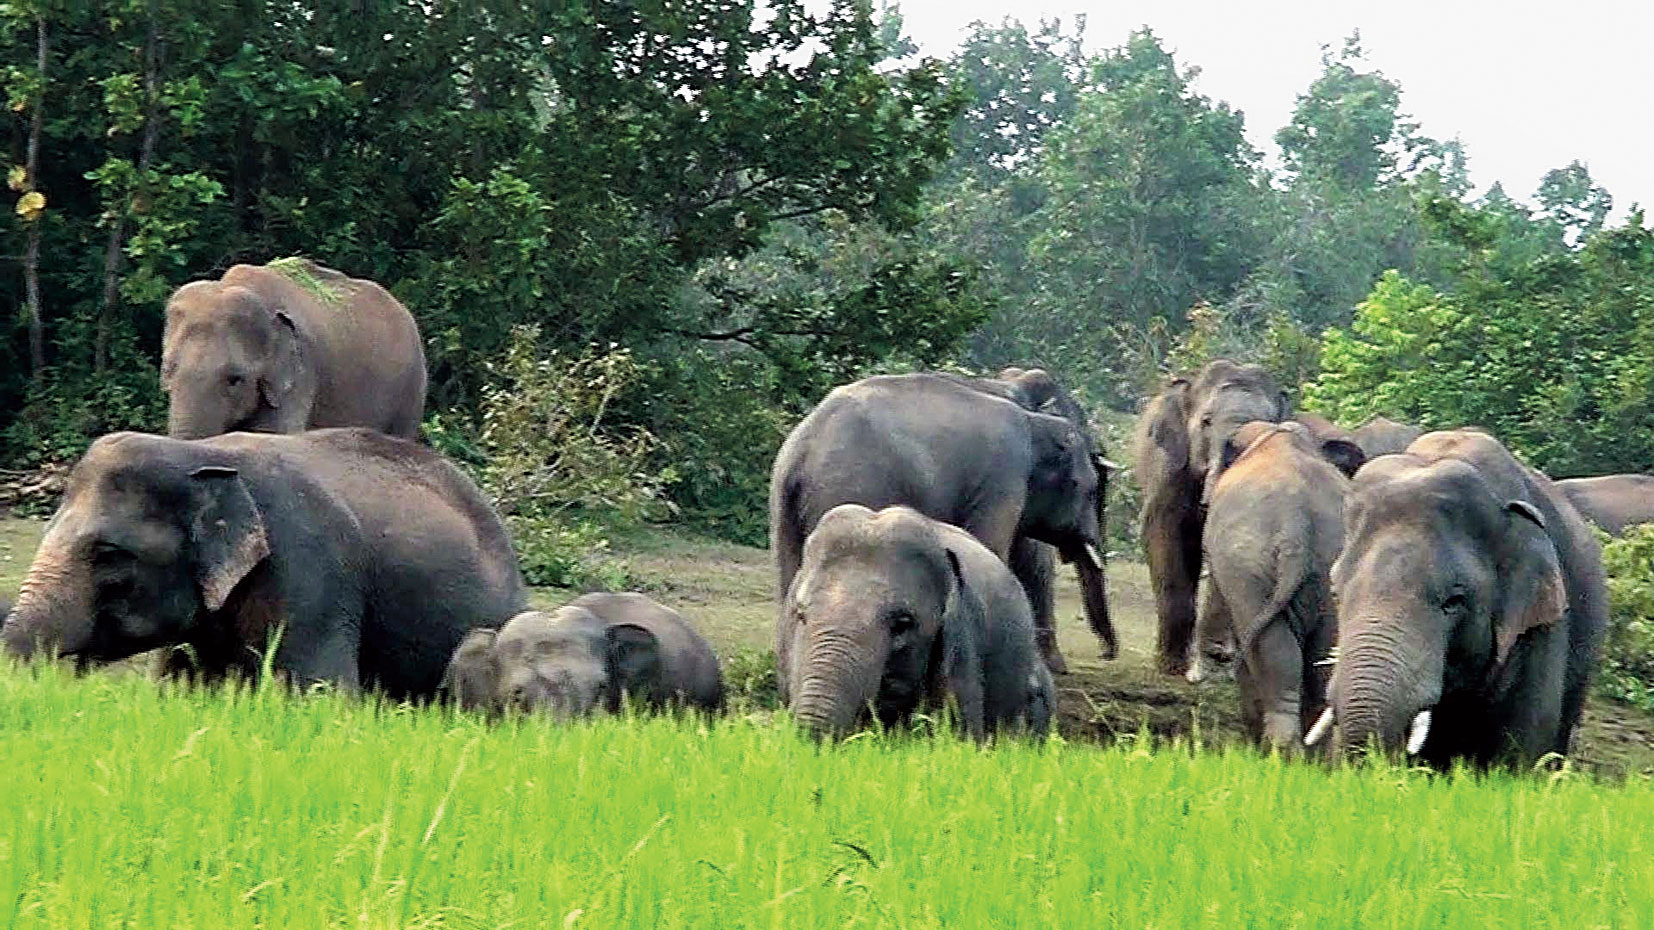 Elephants at a forest in Odisha.